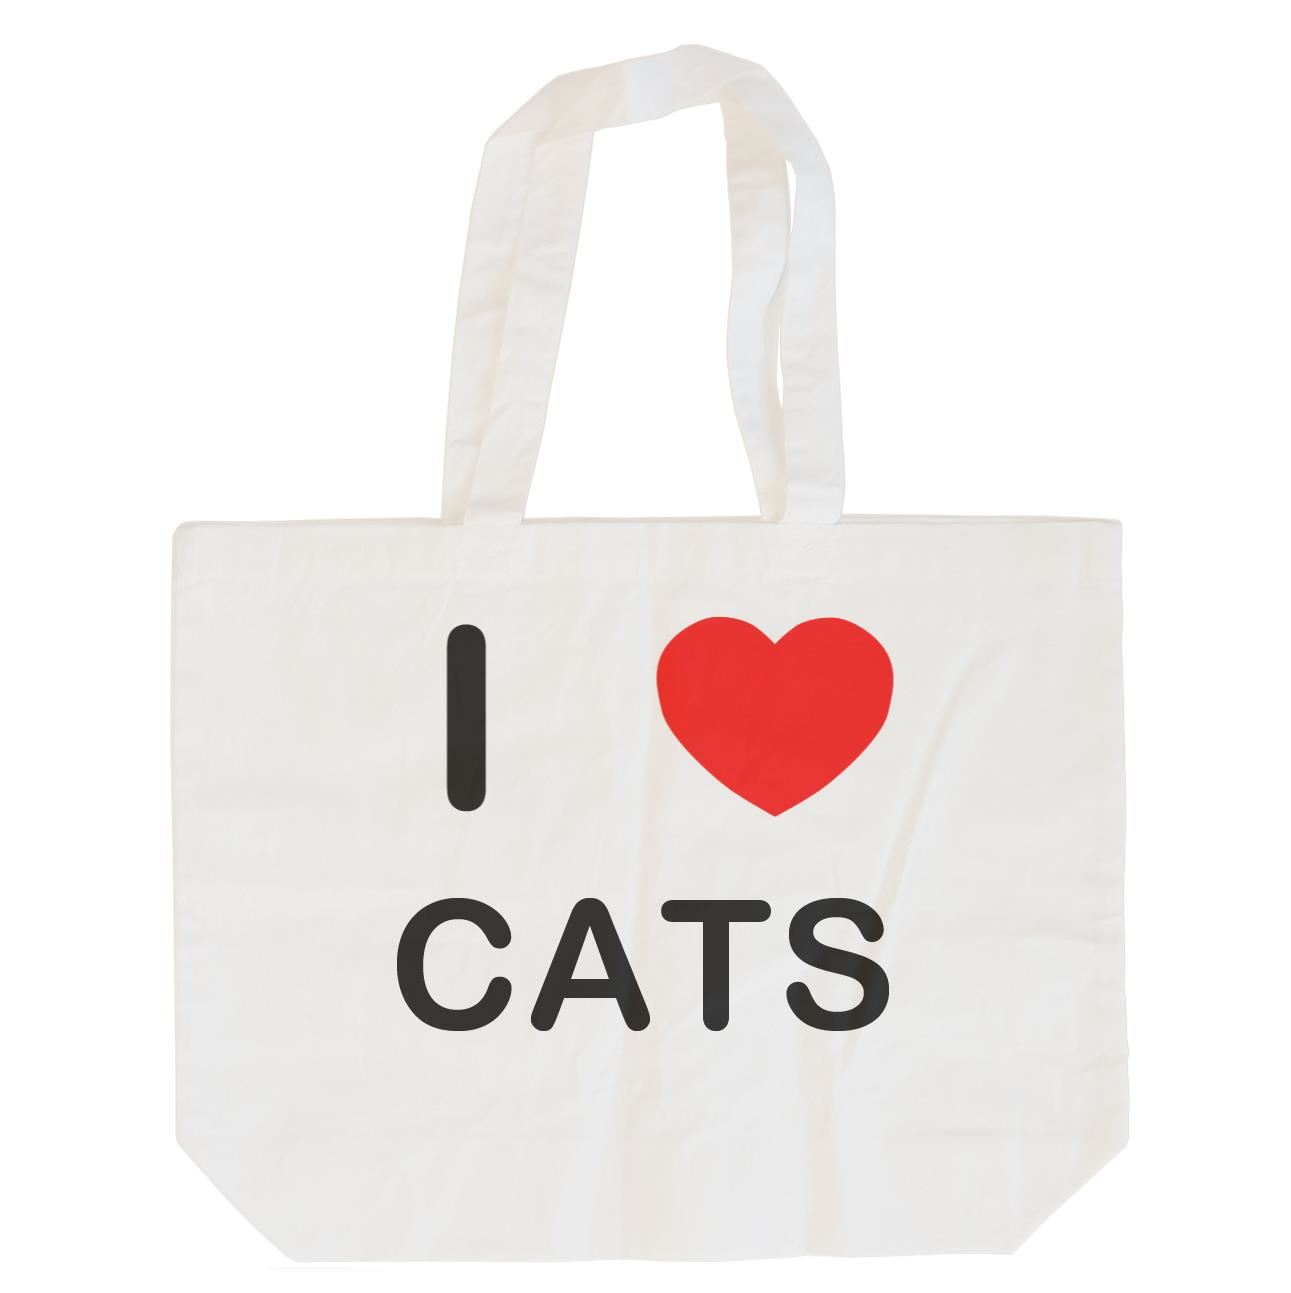 I Love Cats - Cotton Bag | Size choice Tote, Shopper or Sling